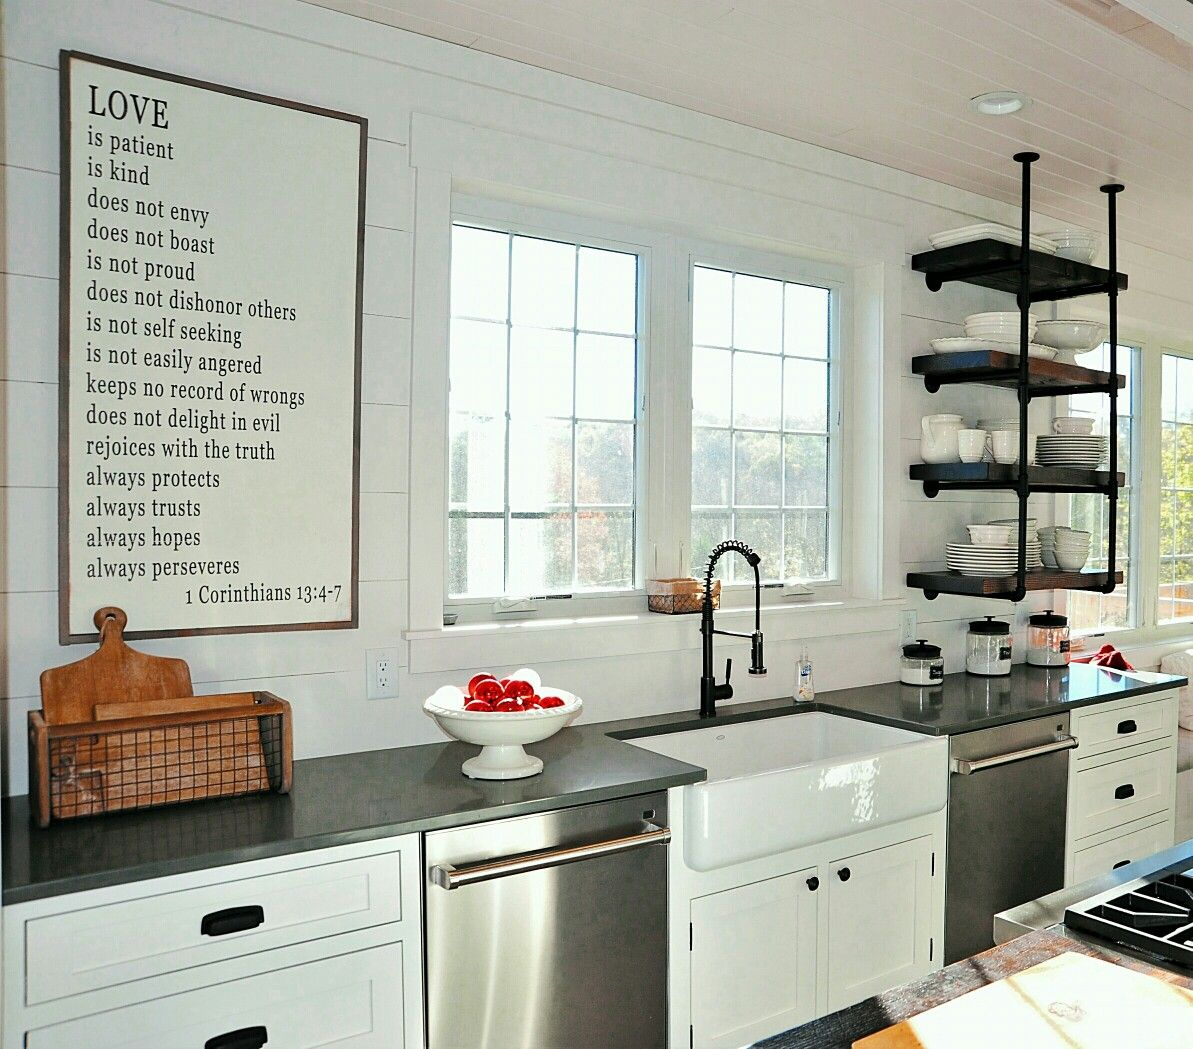 White Kitchen With Shiplap Walls Shaker Cabinets Industrial Shelves And Farmhouse Sink White Kitchen Rustic Lake House Kitchen White Kitchen Decor